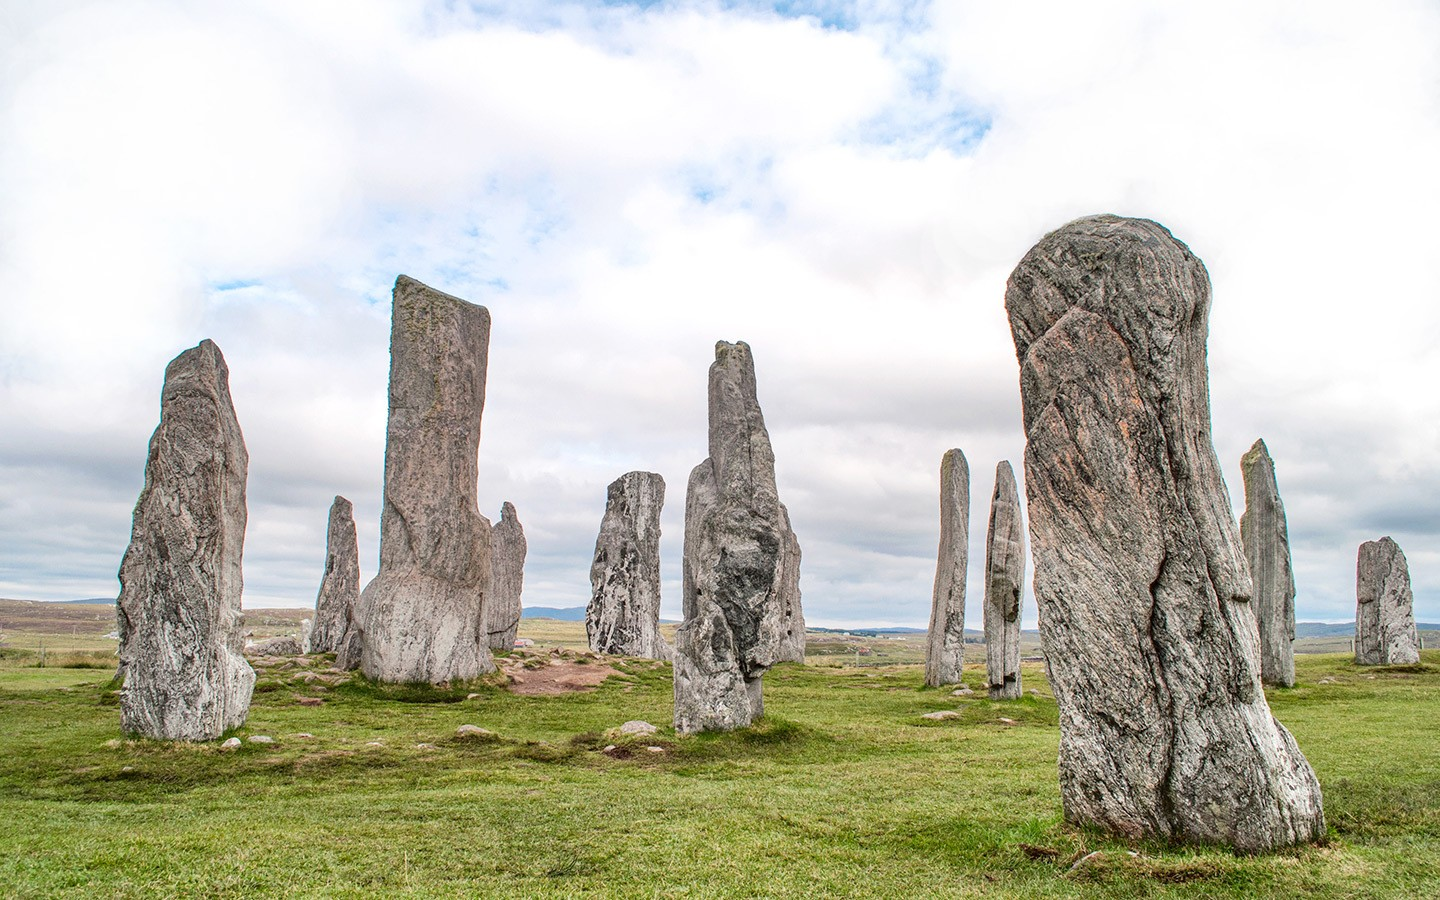 The Callanish Stones in the Outer Hebrides, Scotland, from the Lewis Trilogy travel books